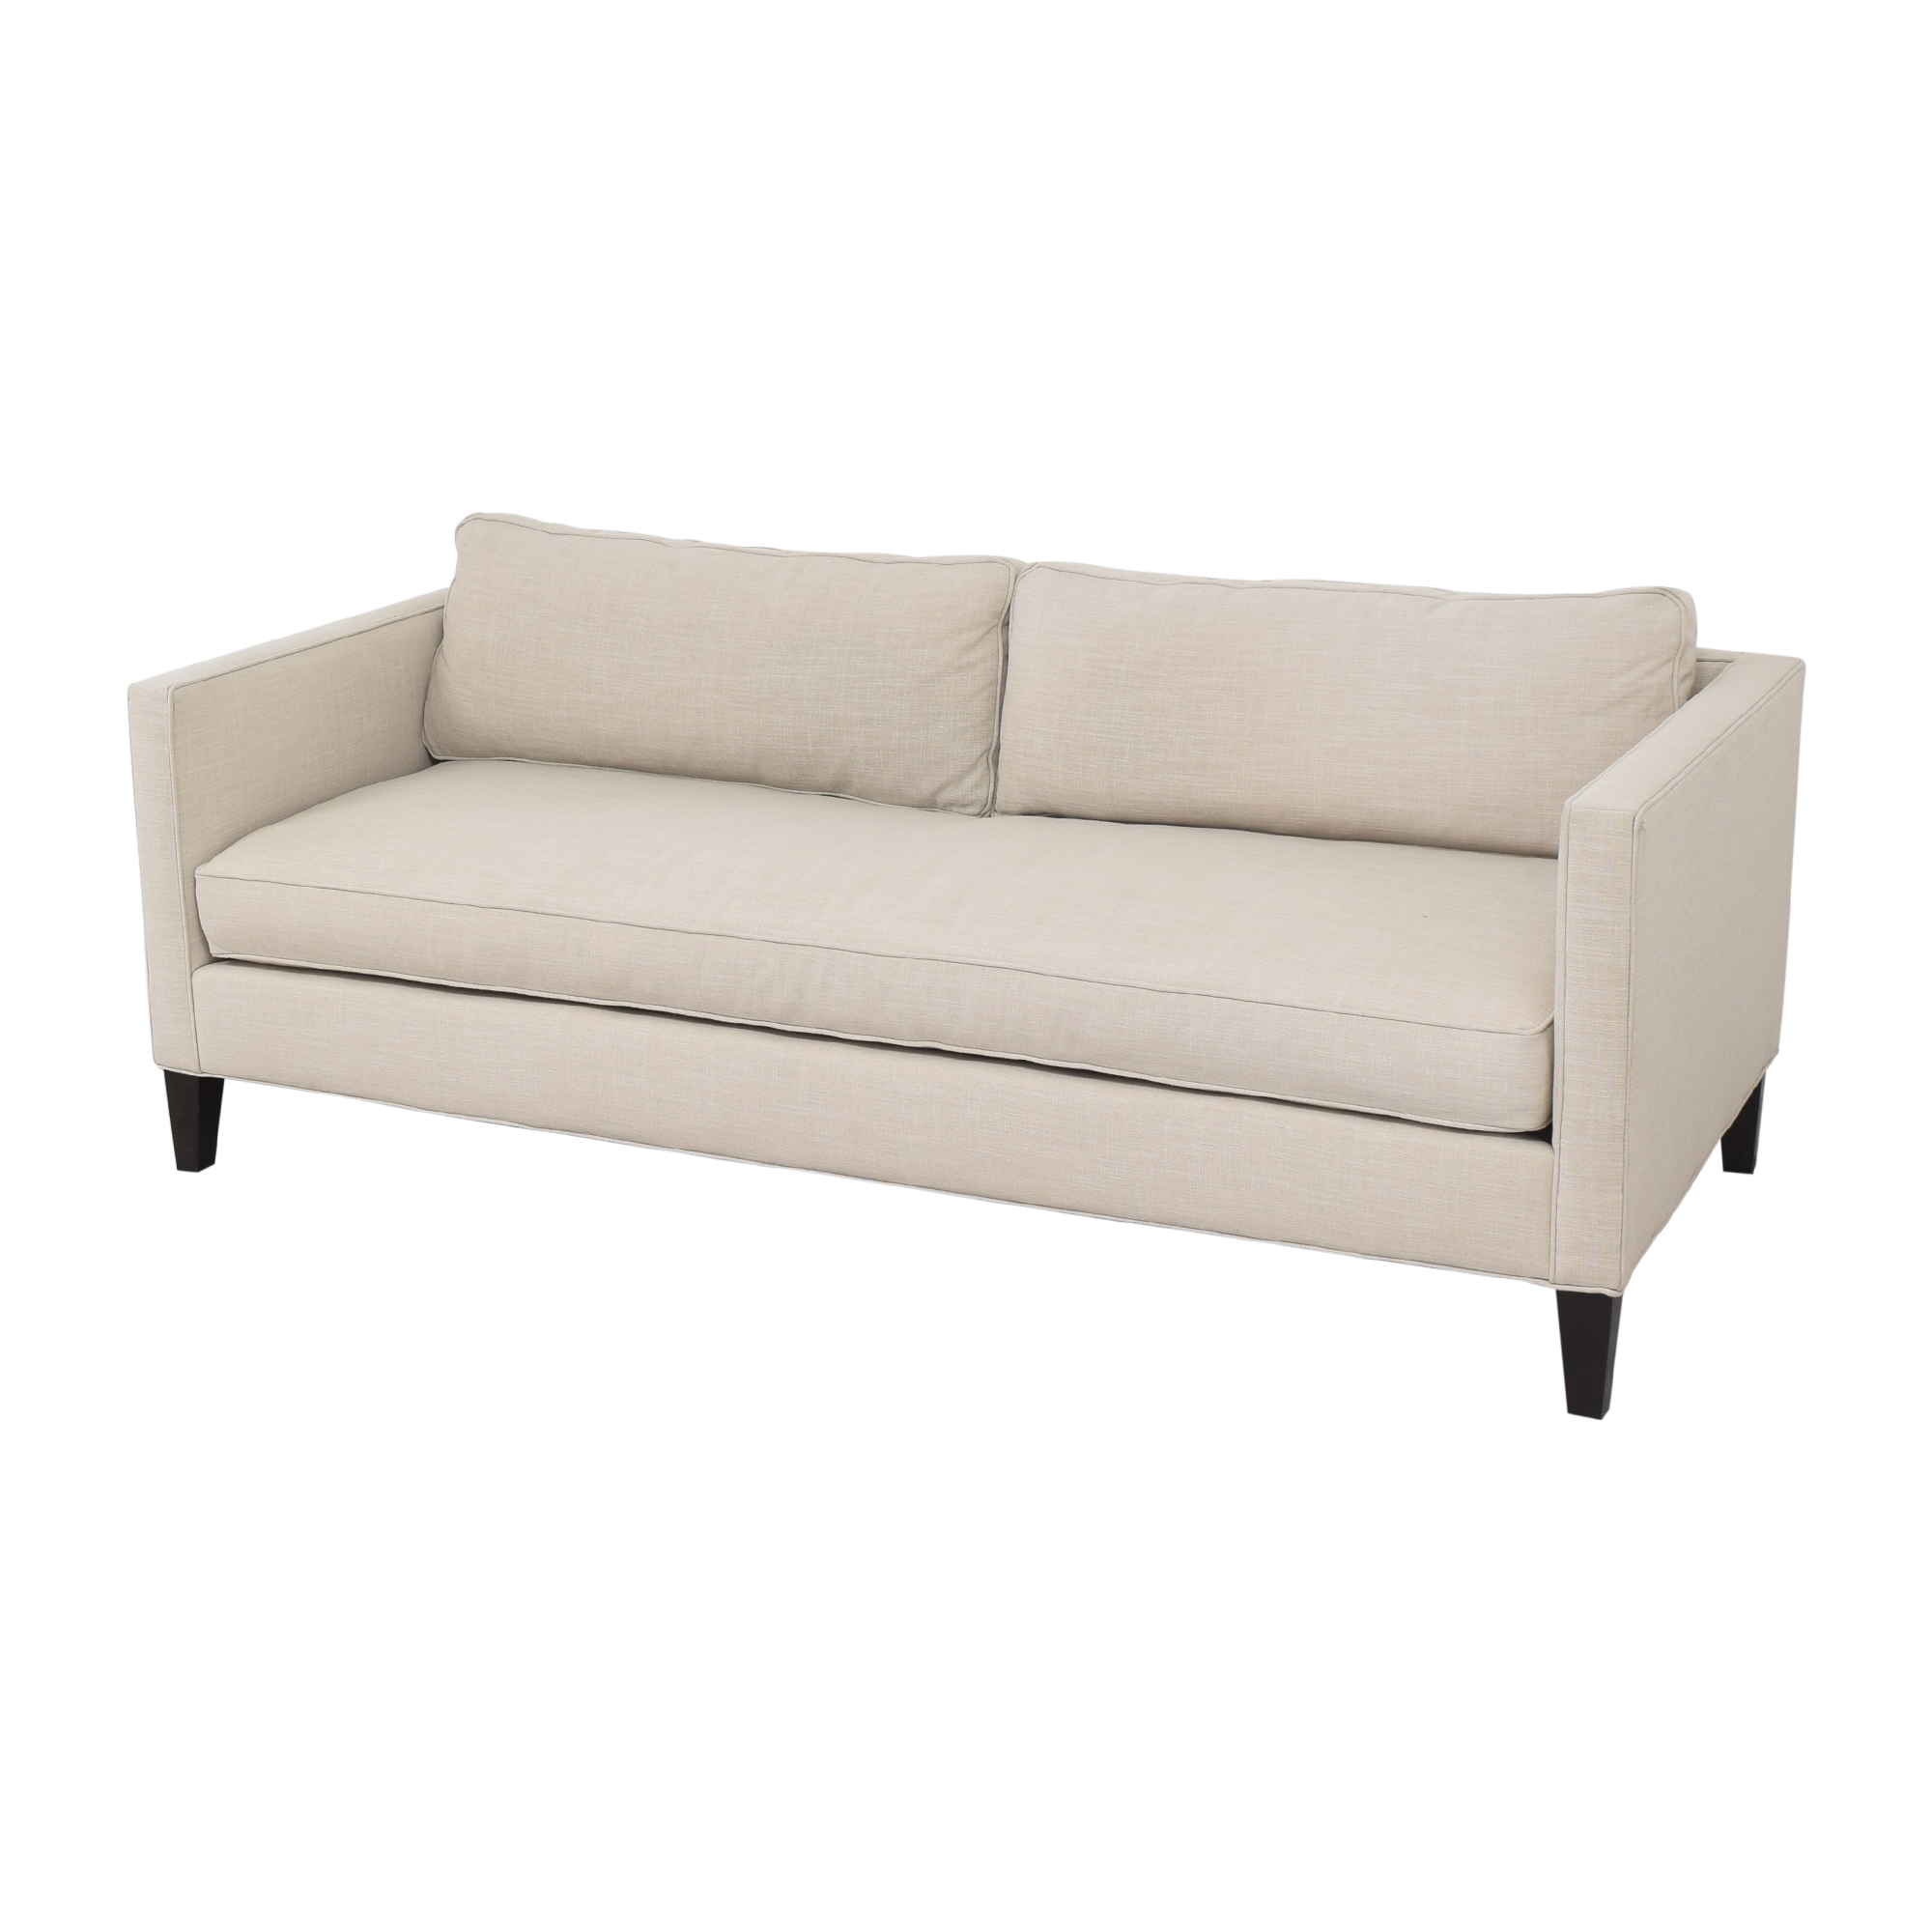 West Elm West Elm Dunham Sofa nj